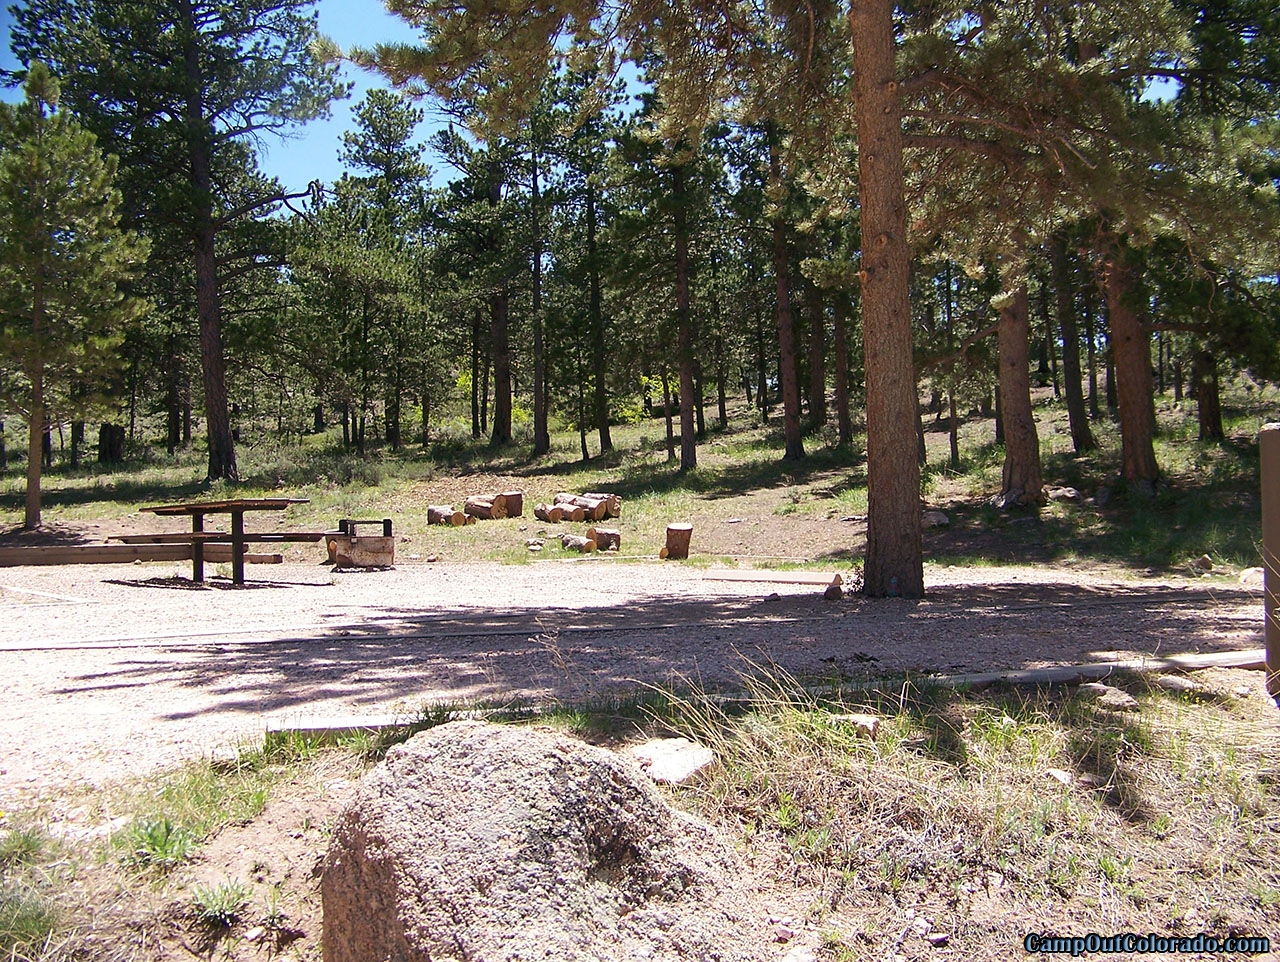 campoutcolorado-west-lake-wooded-area